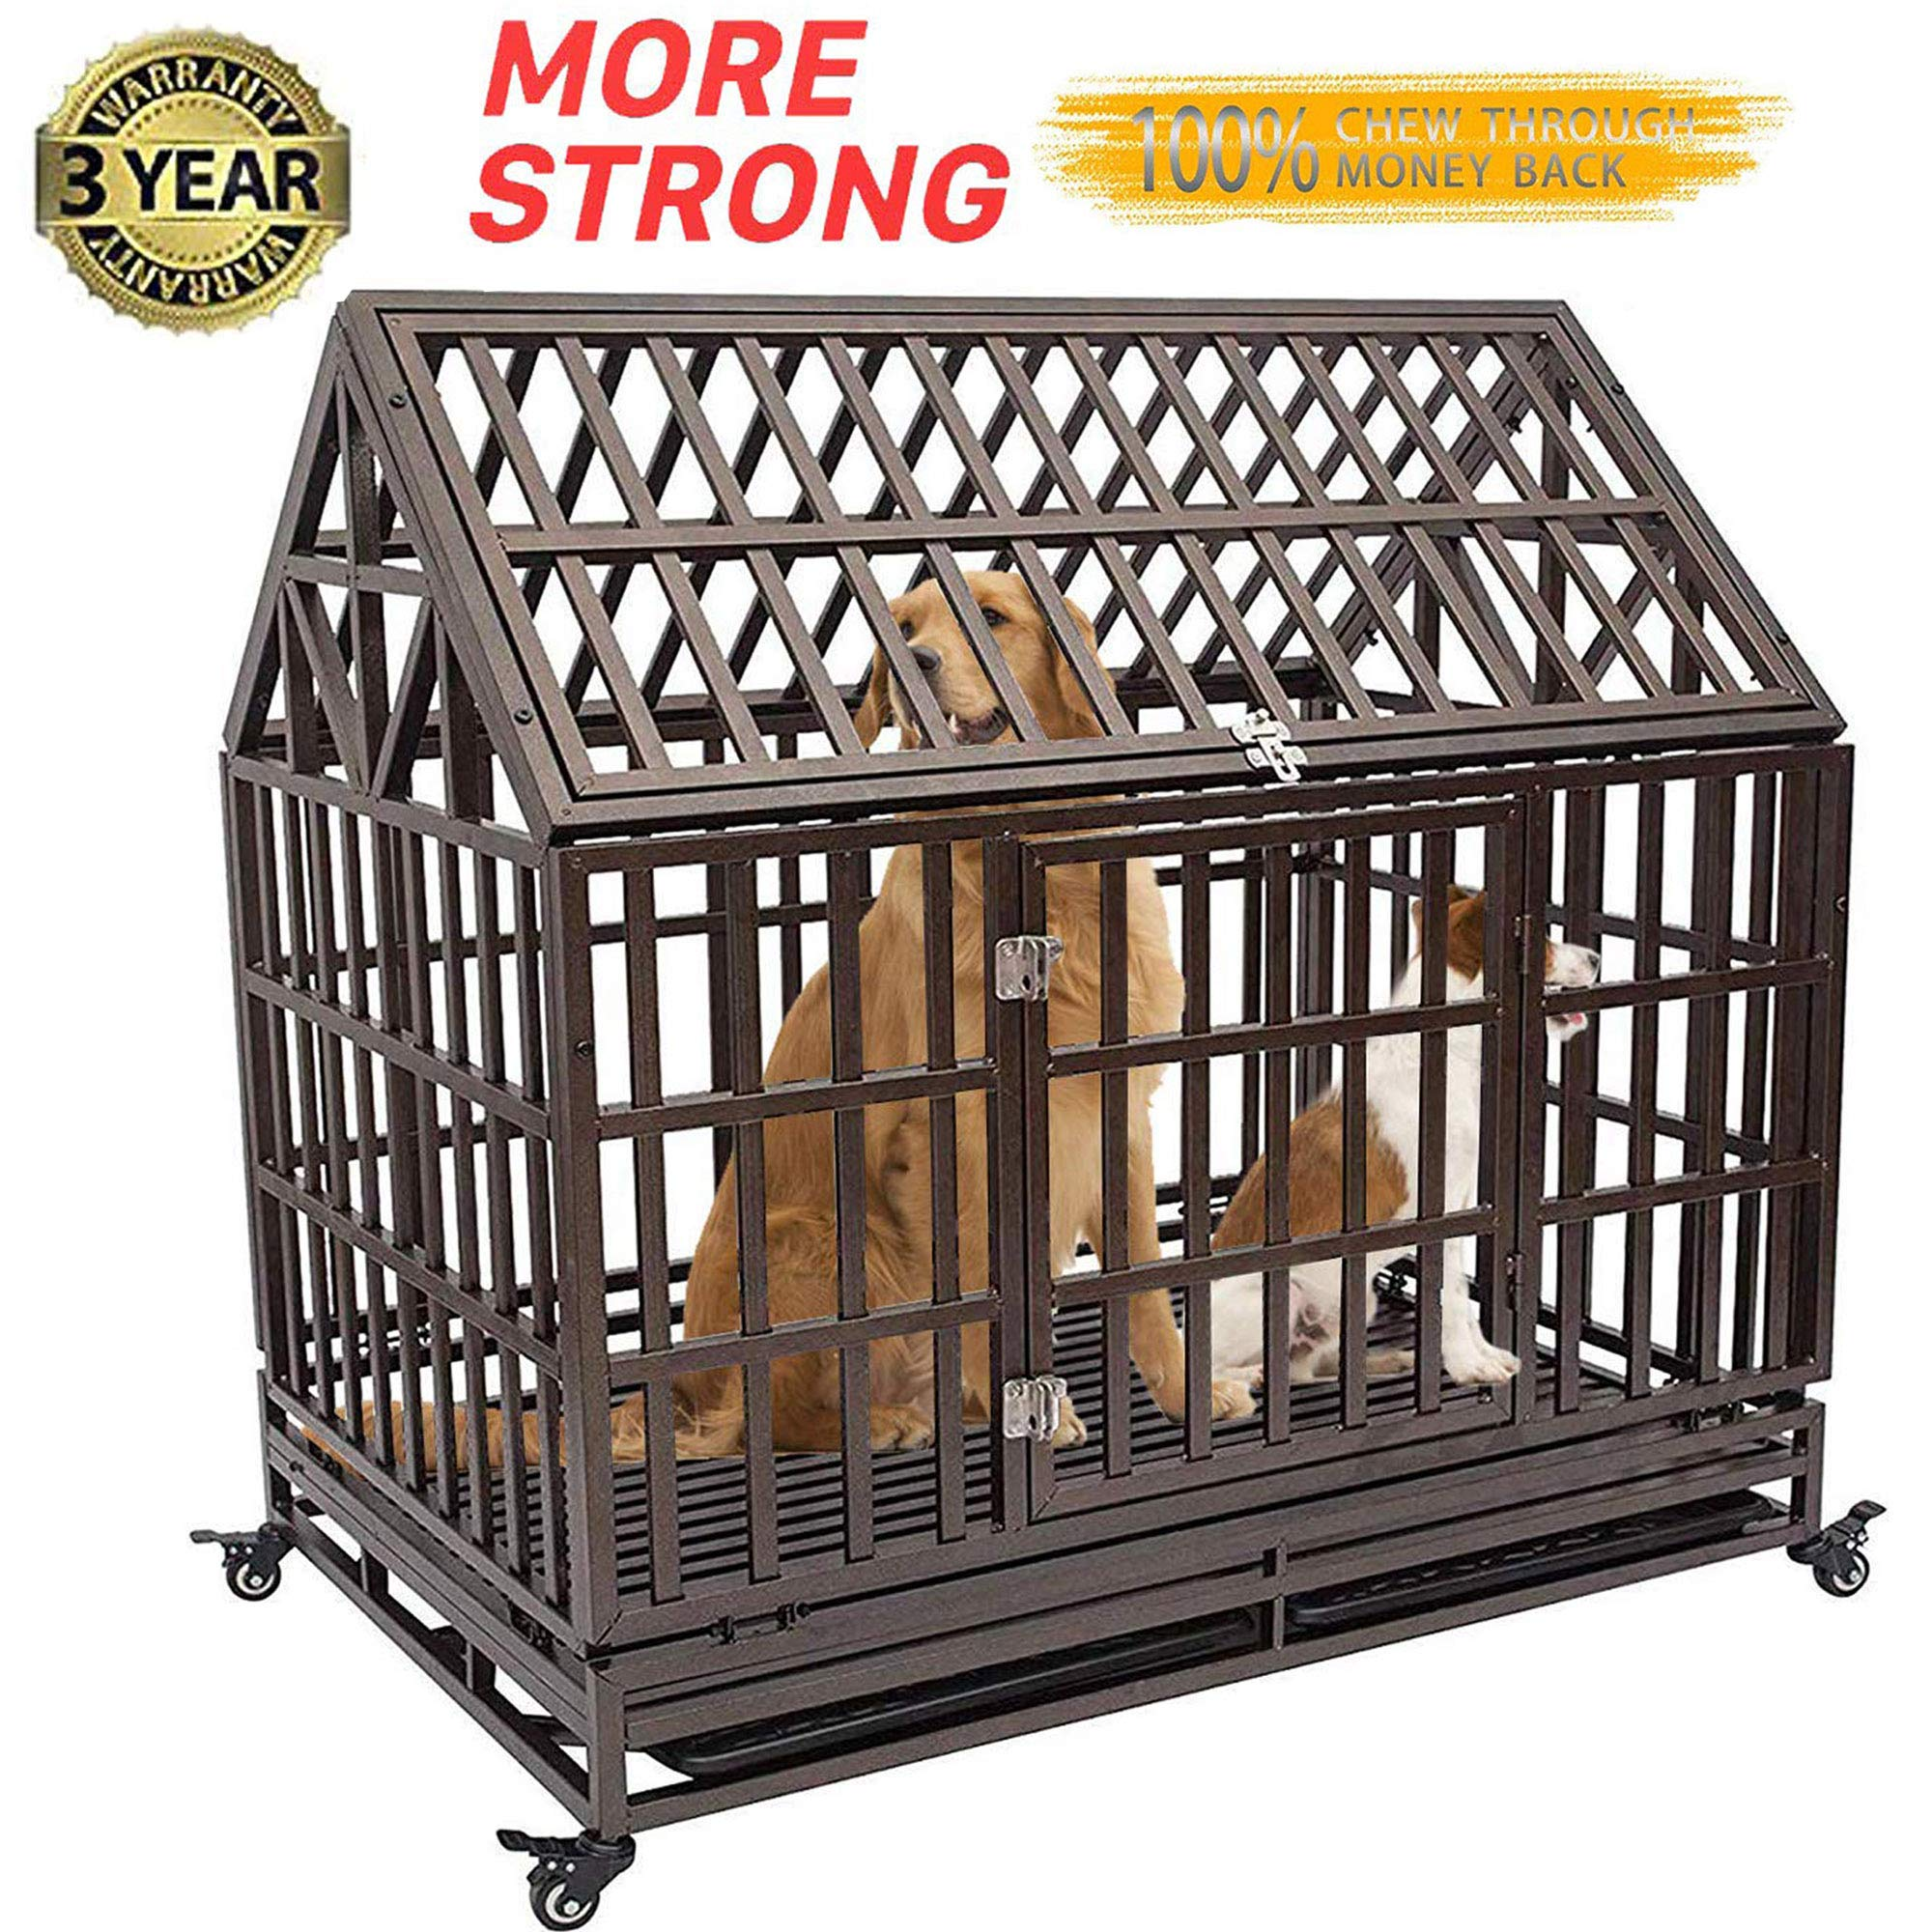 Gelinzon Roof Dog Cage Crate Kennel Heavy Duty Large Homestead Serise for Large Dogs with Patent Lock, Tray and Four Lockable Wheels, 46''/Black